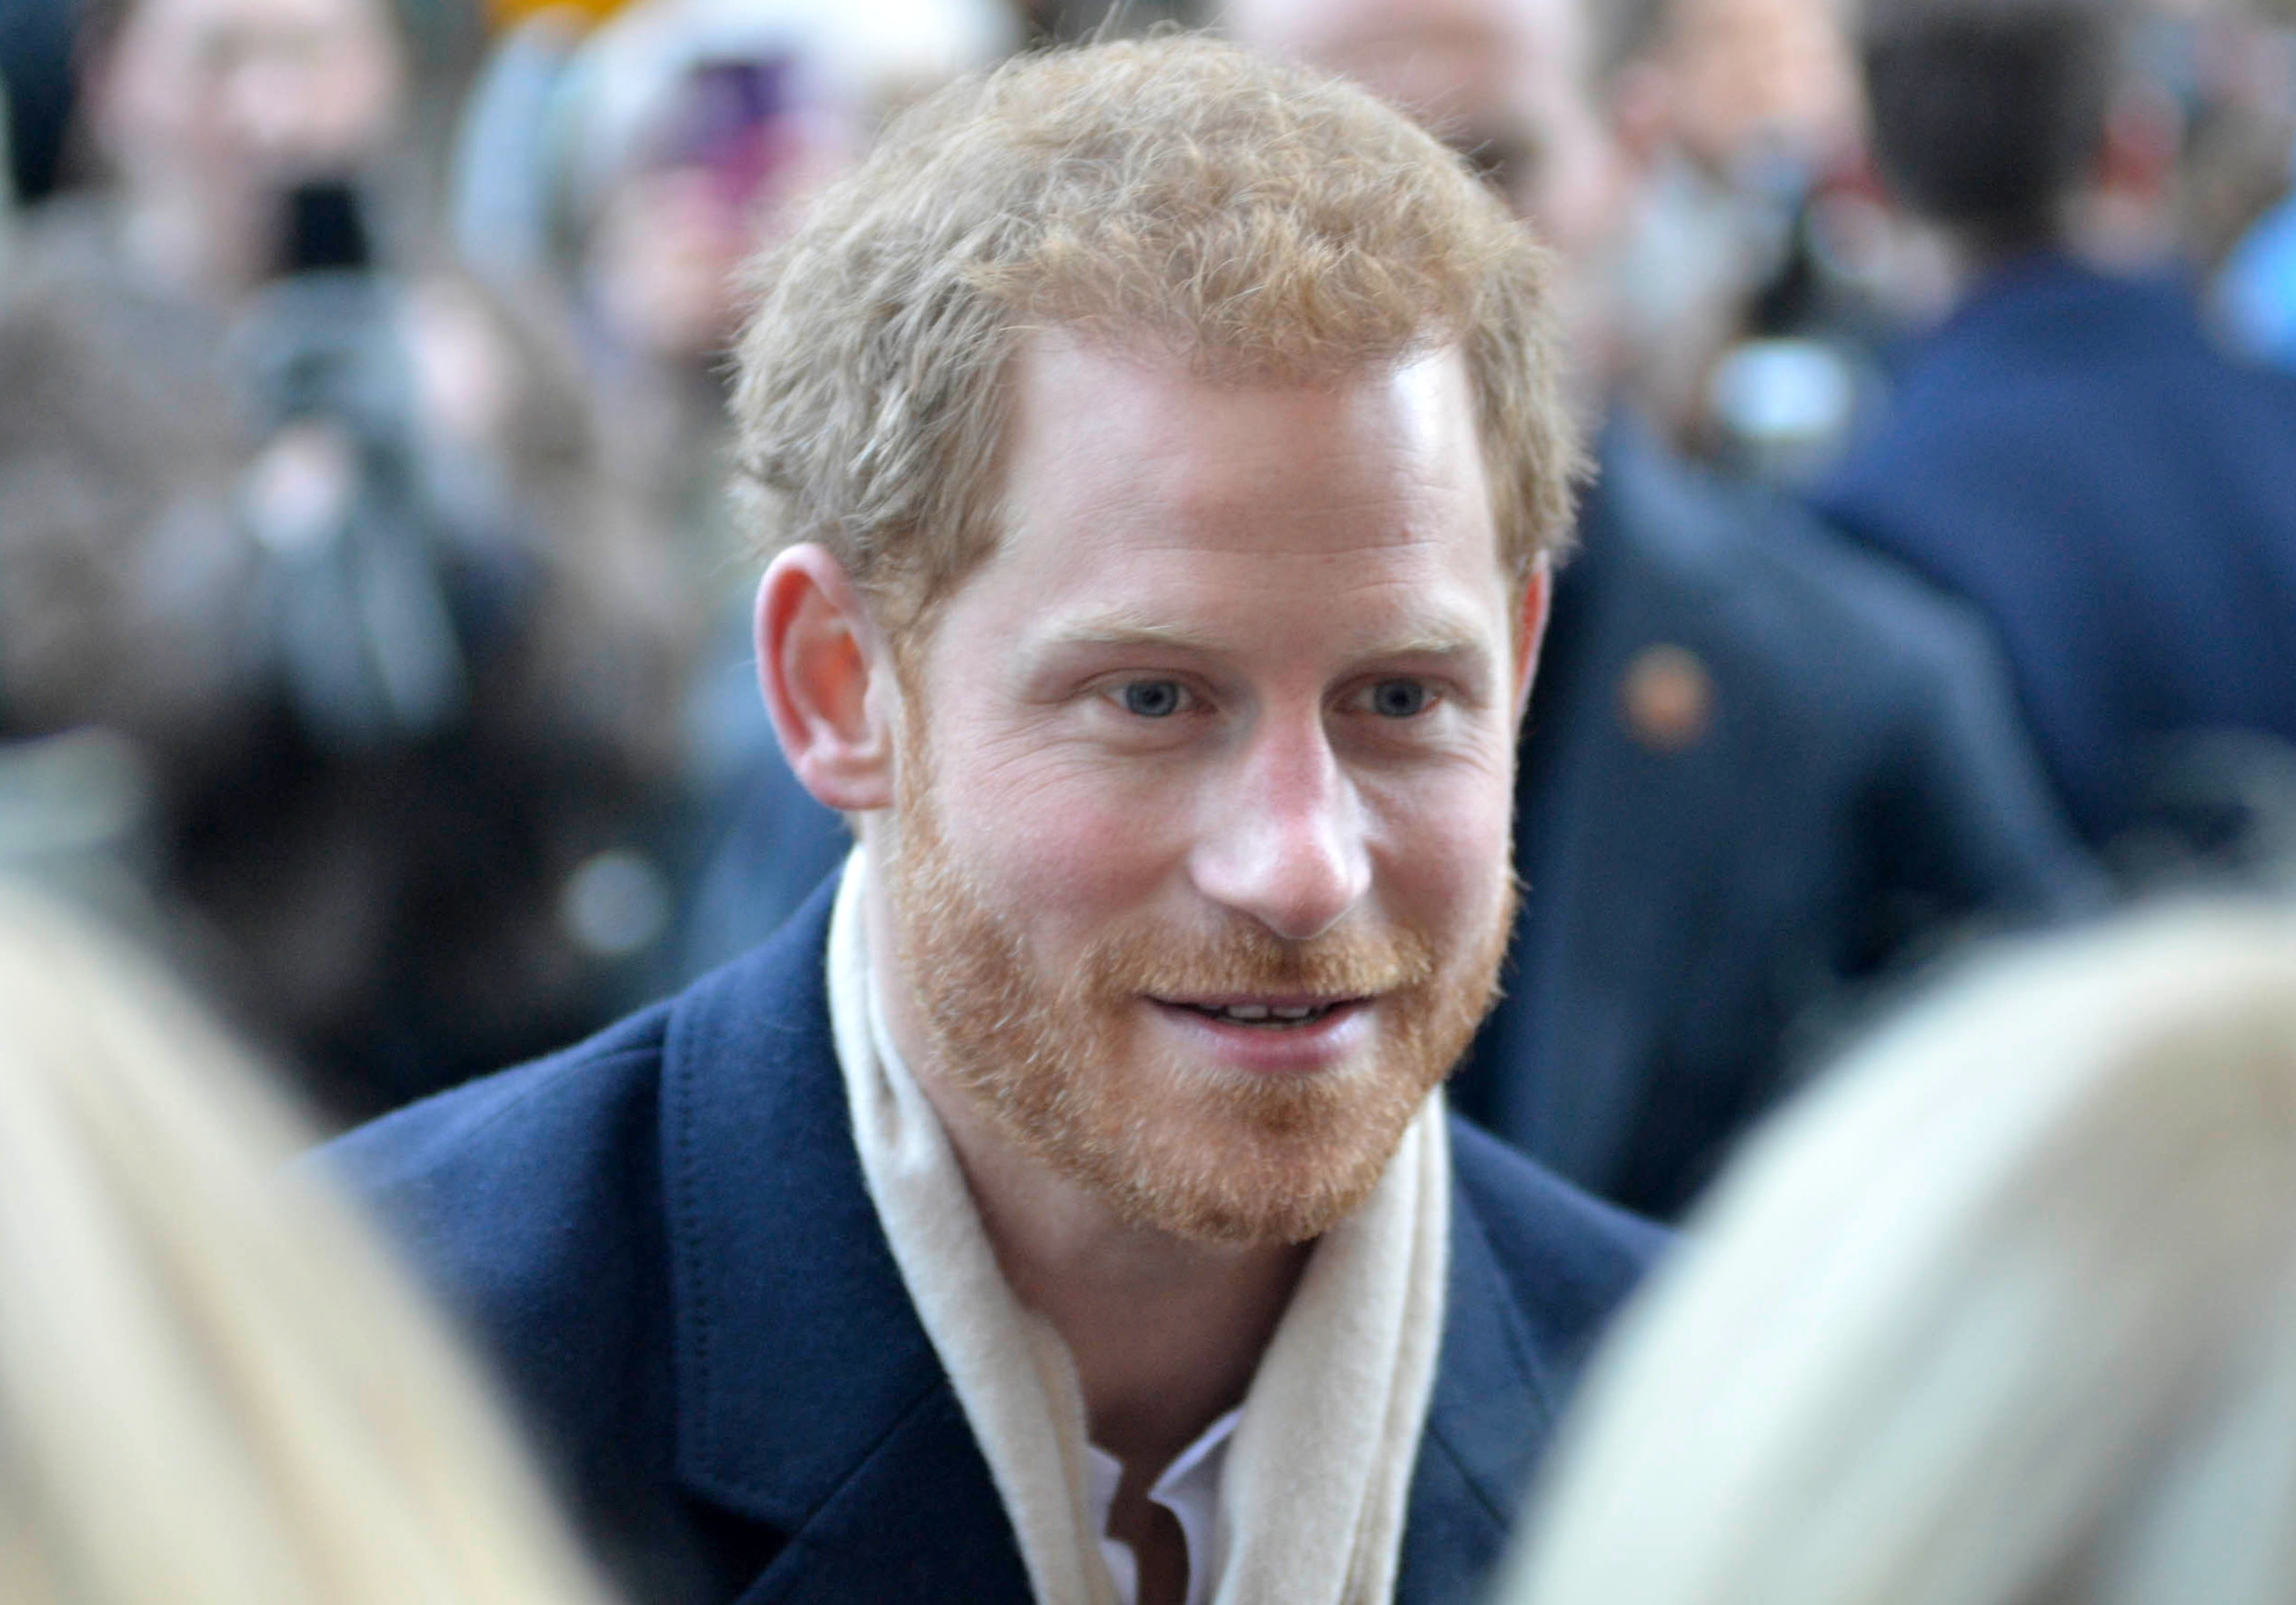 Prince Harry and Meghan Markle attend the Terrence Higgins Trust charity fair at the Nottingham Contemporary Centre                Featuring: Prince Harry        Where: Nottingham, United Kingdom        When: 01 Dec 2017        Credit: WENN.com{&amp;nbsp;}<p></p>